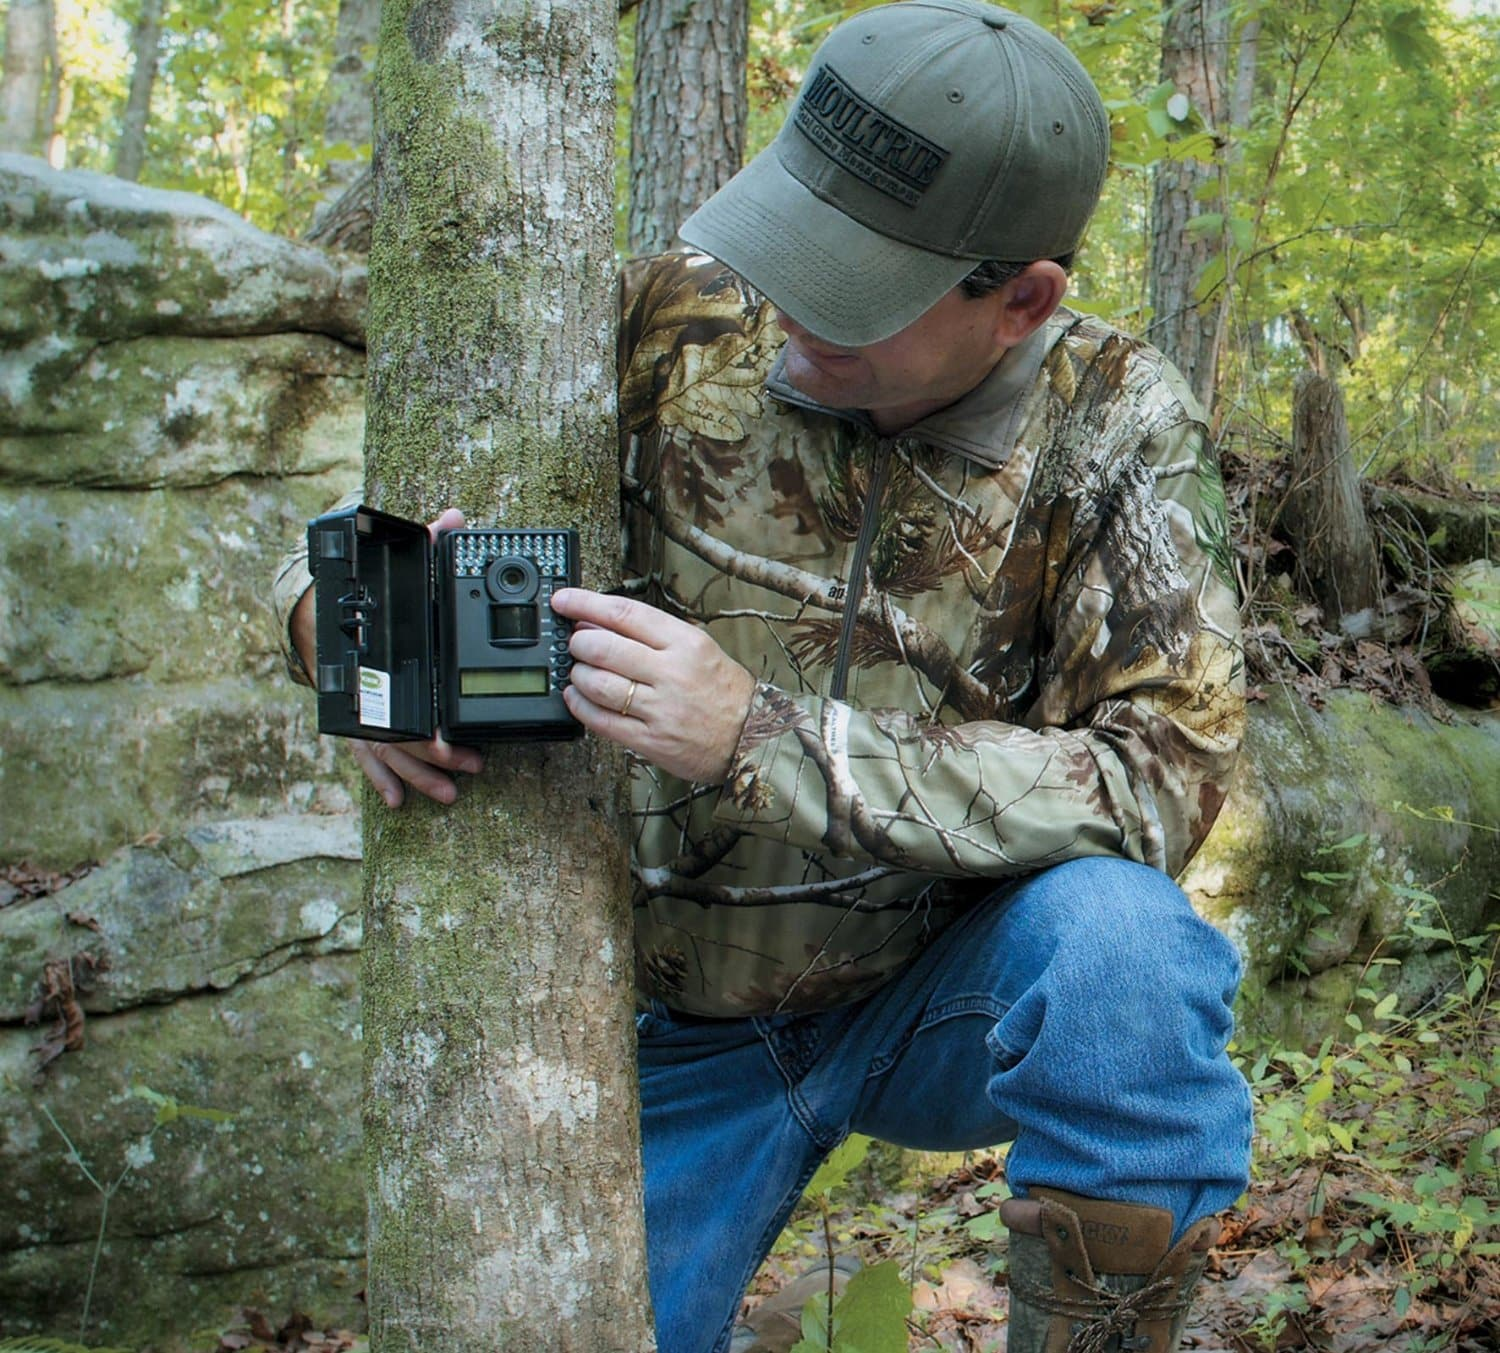 Moultrie Game Spy M-80 - Easy to use